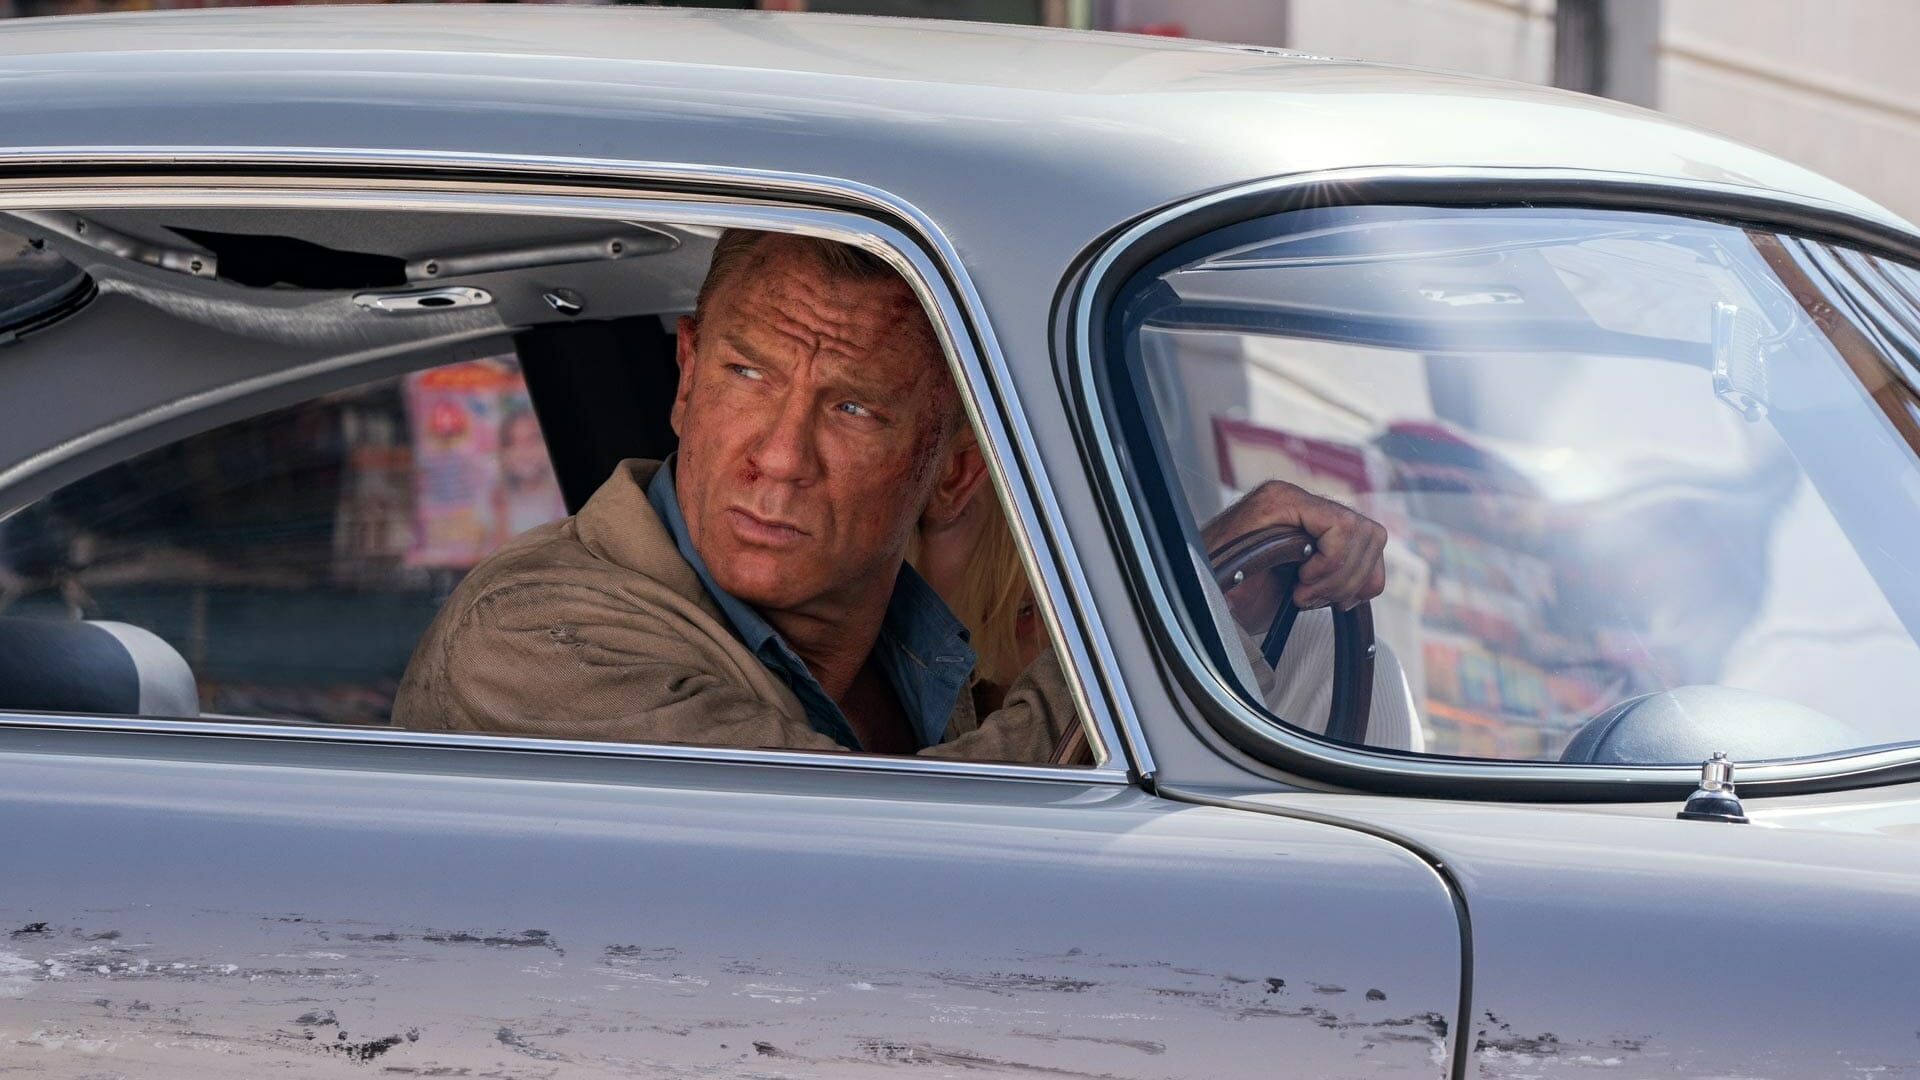 All You Need To Know About The Latest Bond Film 'No Time To Die'